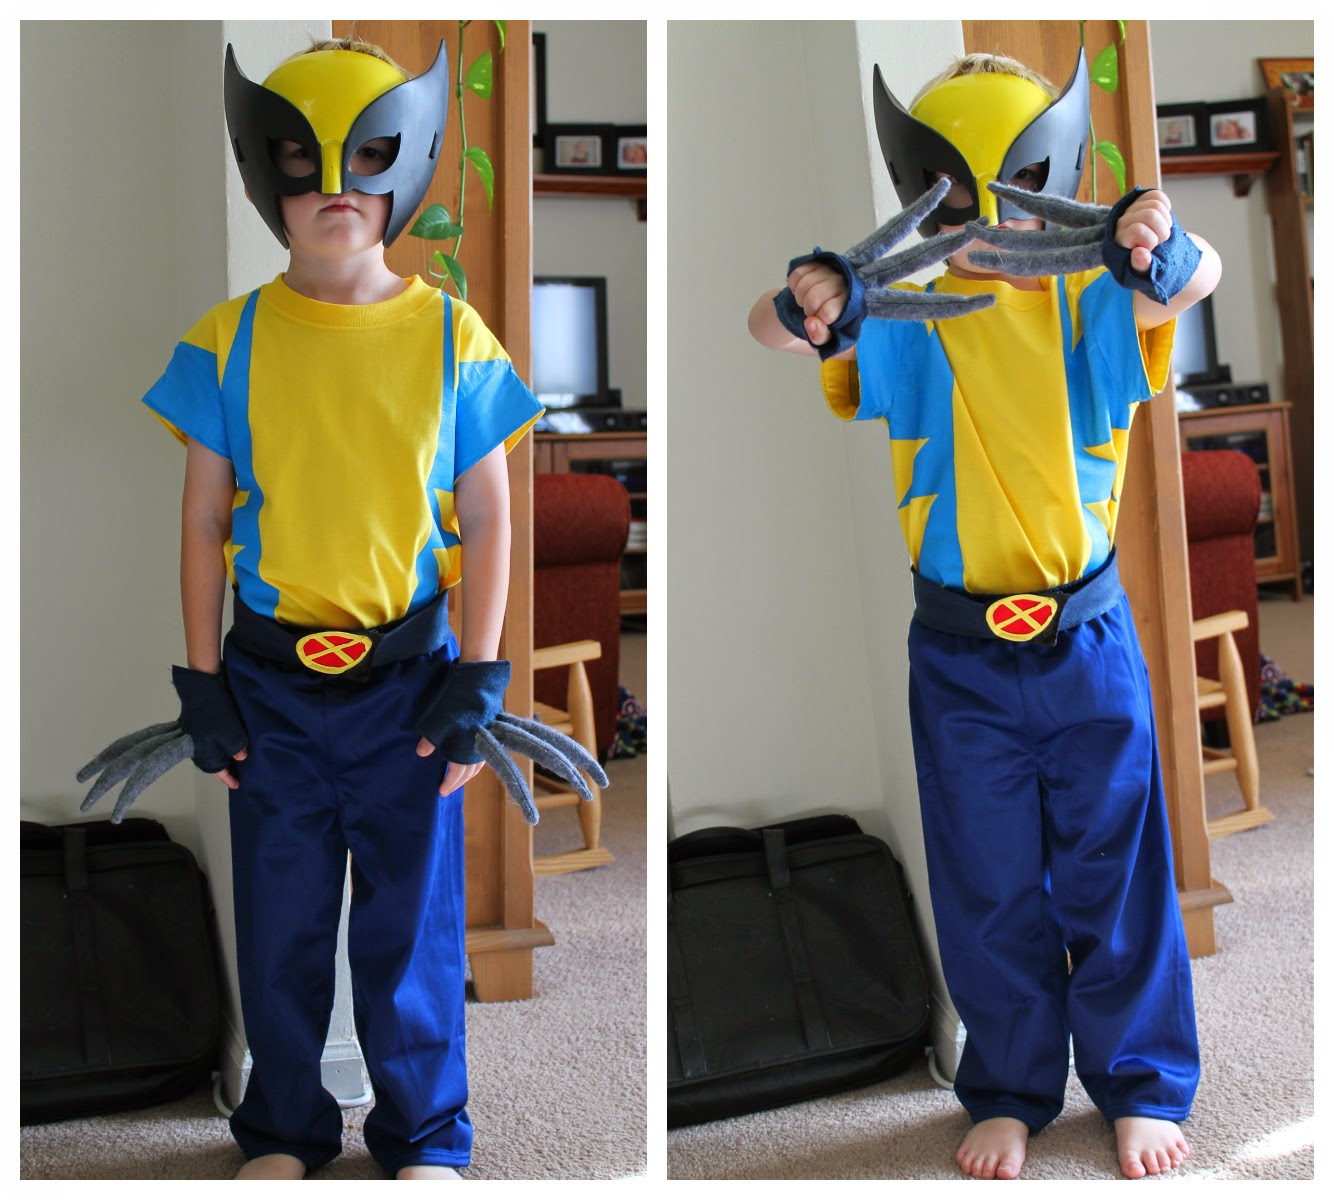 X-men Wolverine costume